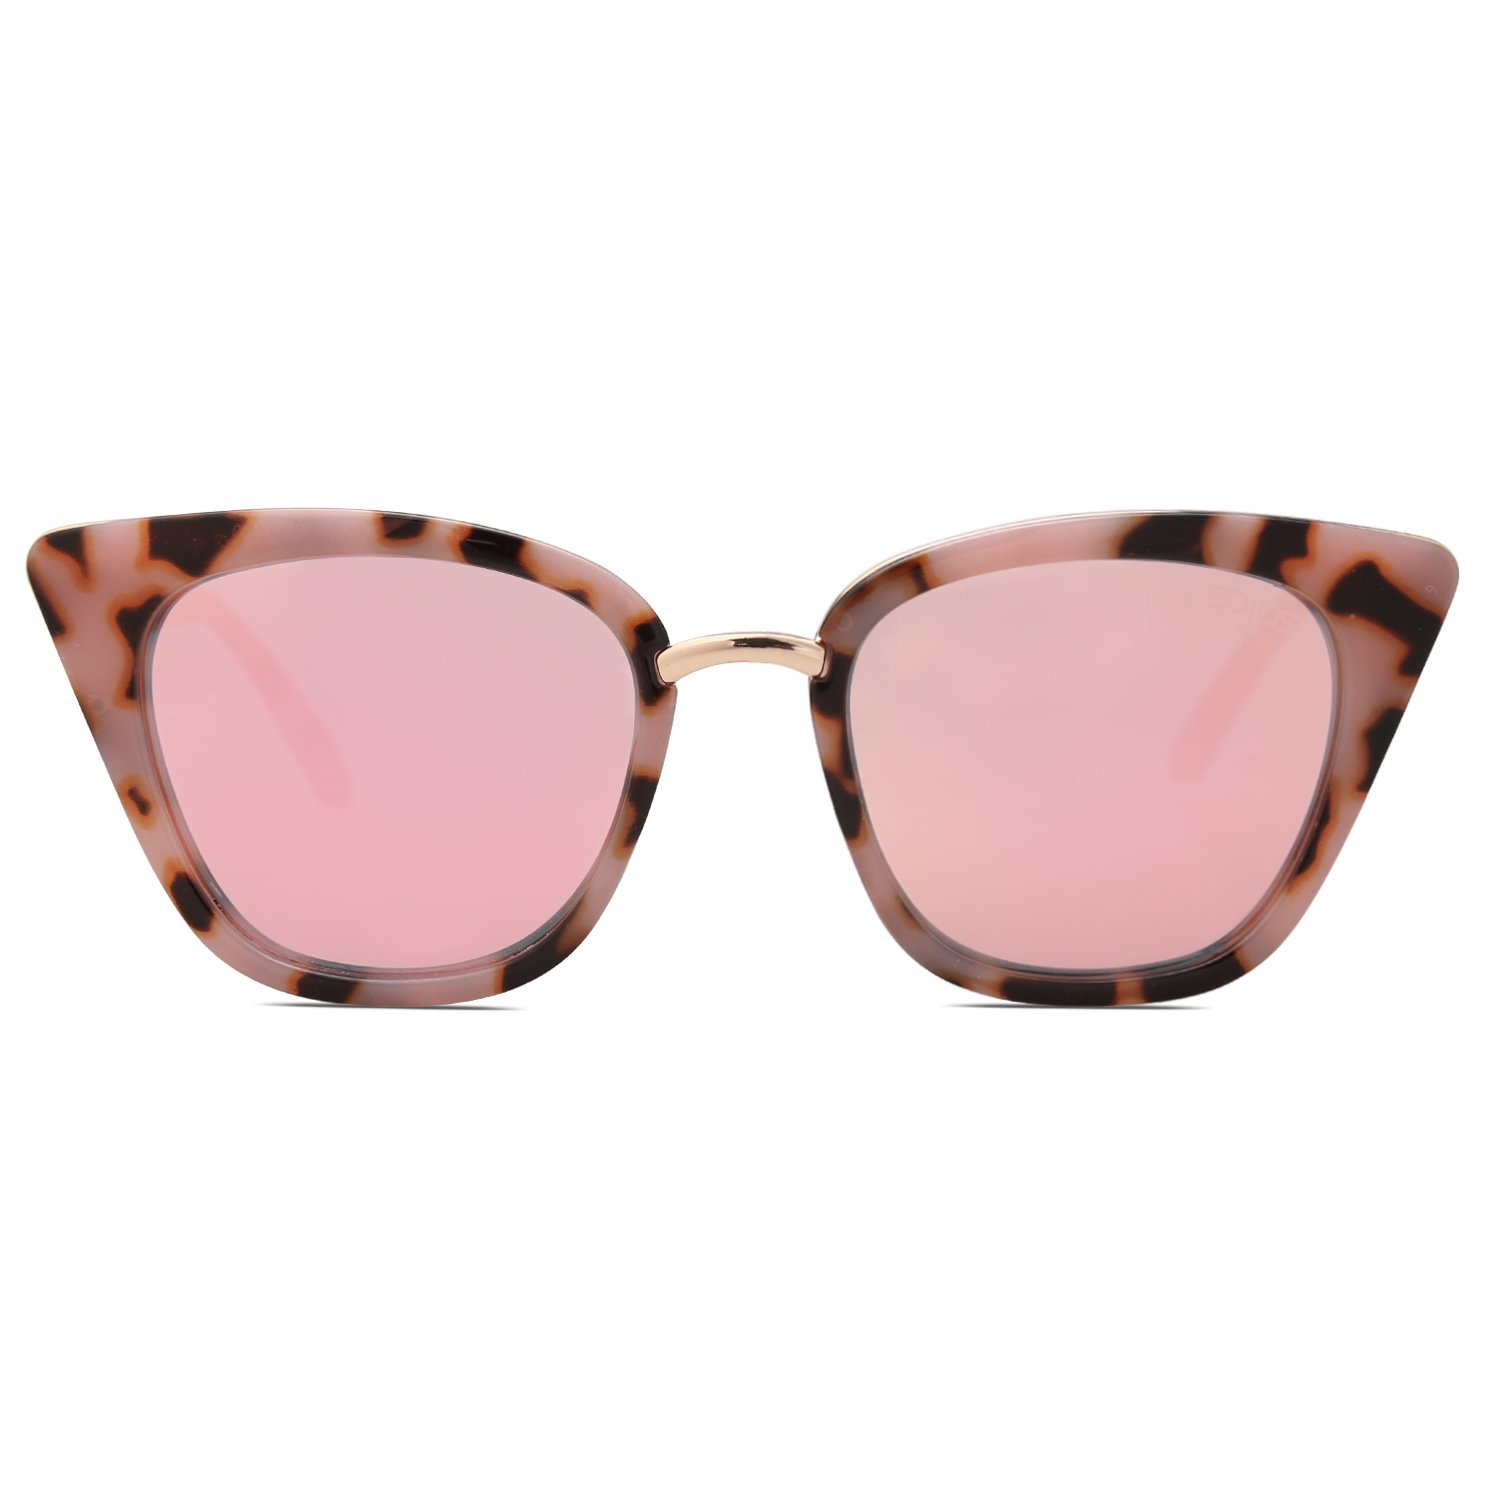 SOJOS Cat Eye Brand Designer Sunglasses Fashion UV400 Protection Glasses SJ2052 with Pink Tortoise Frame/Pink Mirrored Lens by SOJOS